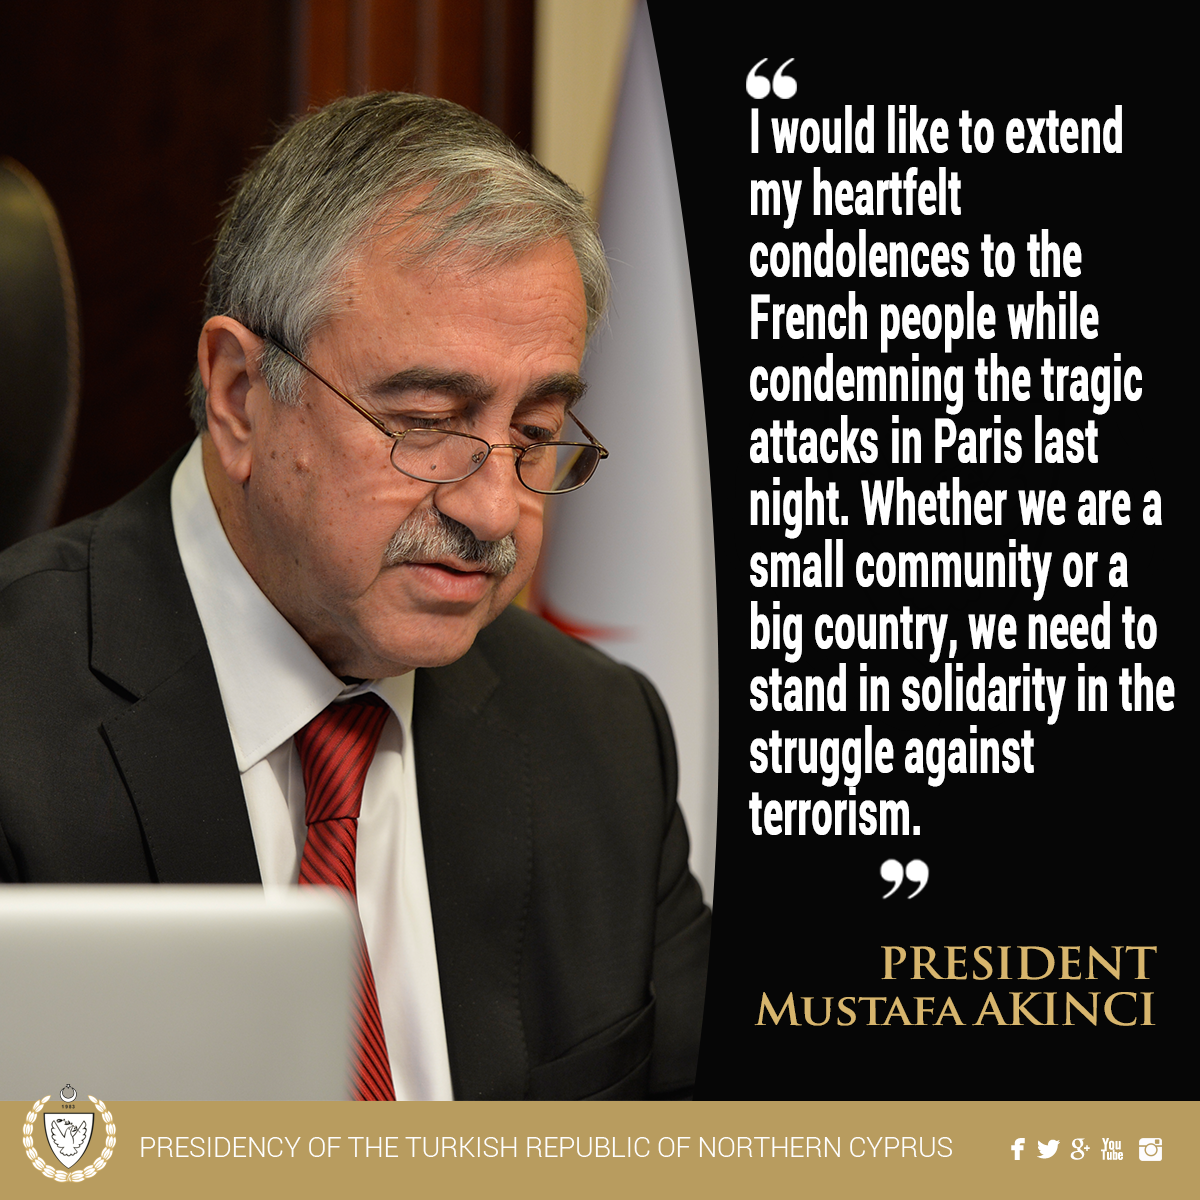 President @MustafaAkinci_1 conveyed his condolences to the French people while condemning the terrorist attacks. https://t.co/EgWRBMNtZy